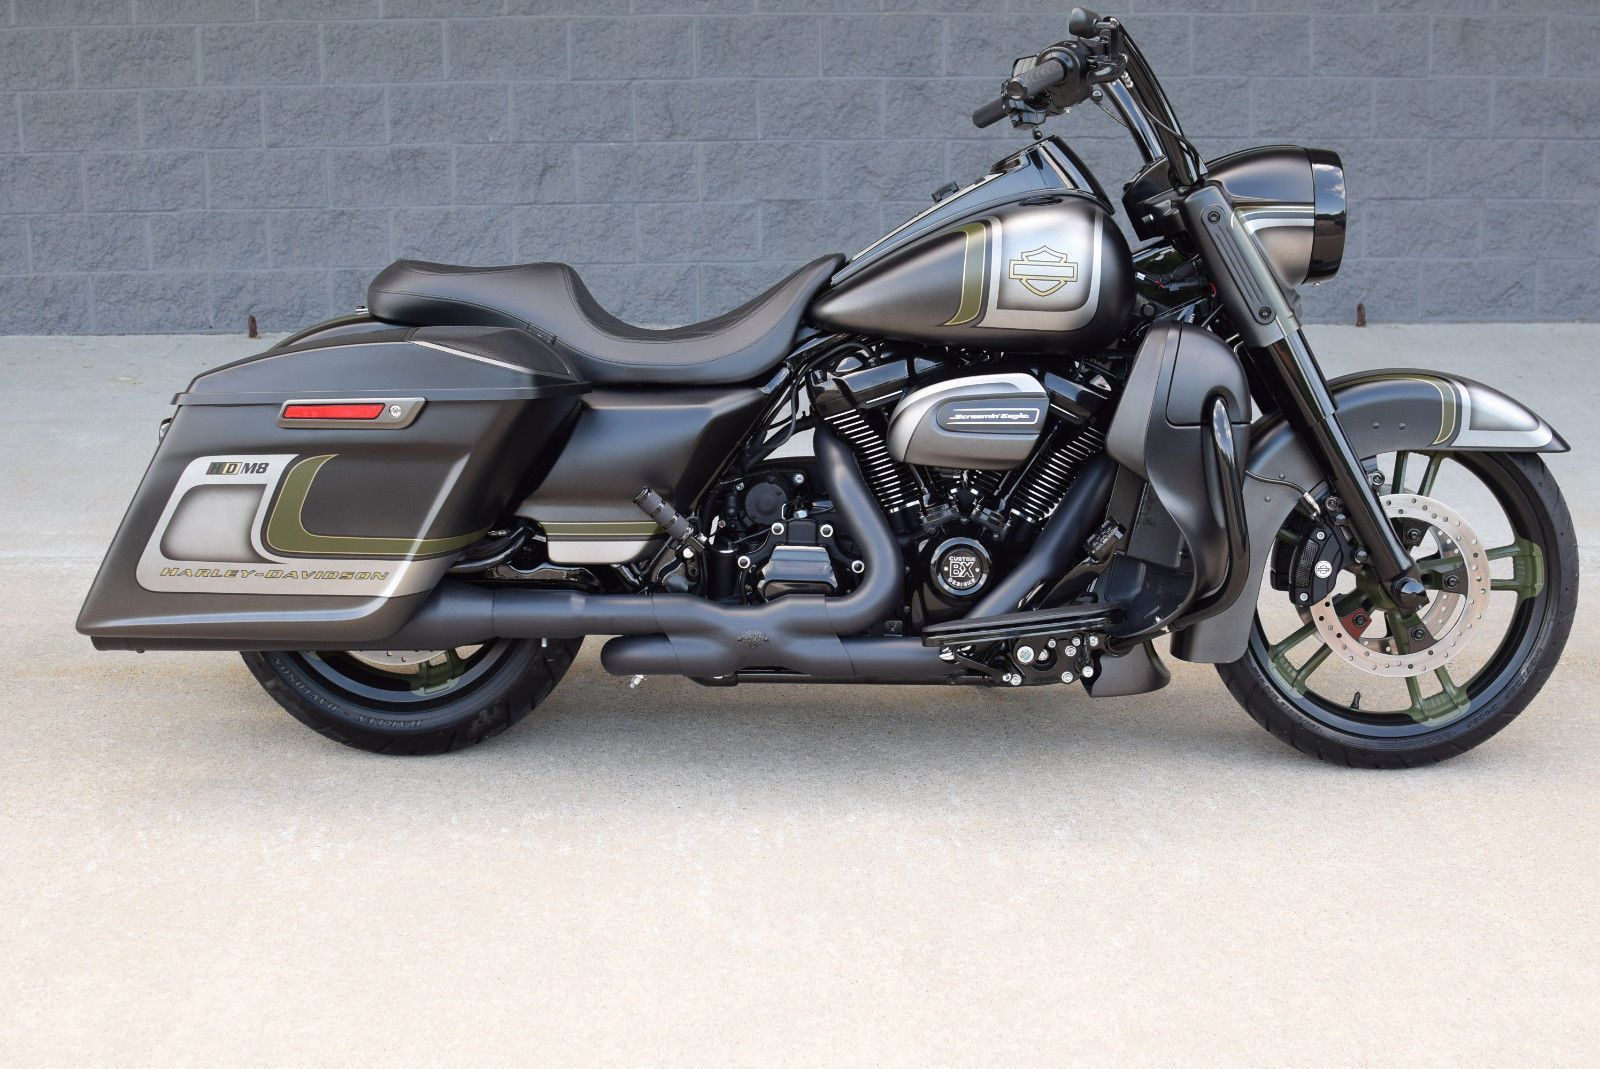 Harley 2017 Davidson Touring Road King Custom Stunning 20k In Xtra S Cvo 1 Of A Kind Wow Please Retweet